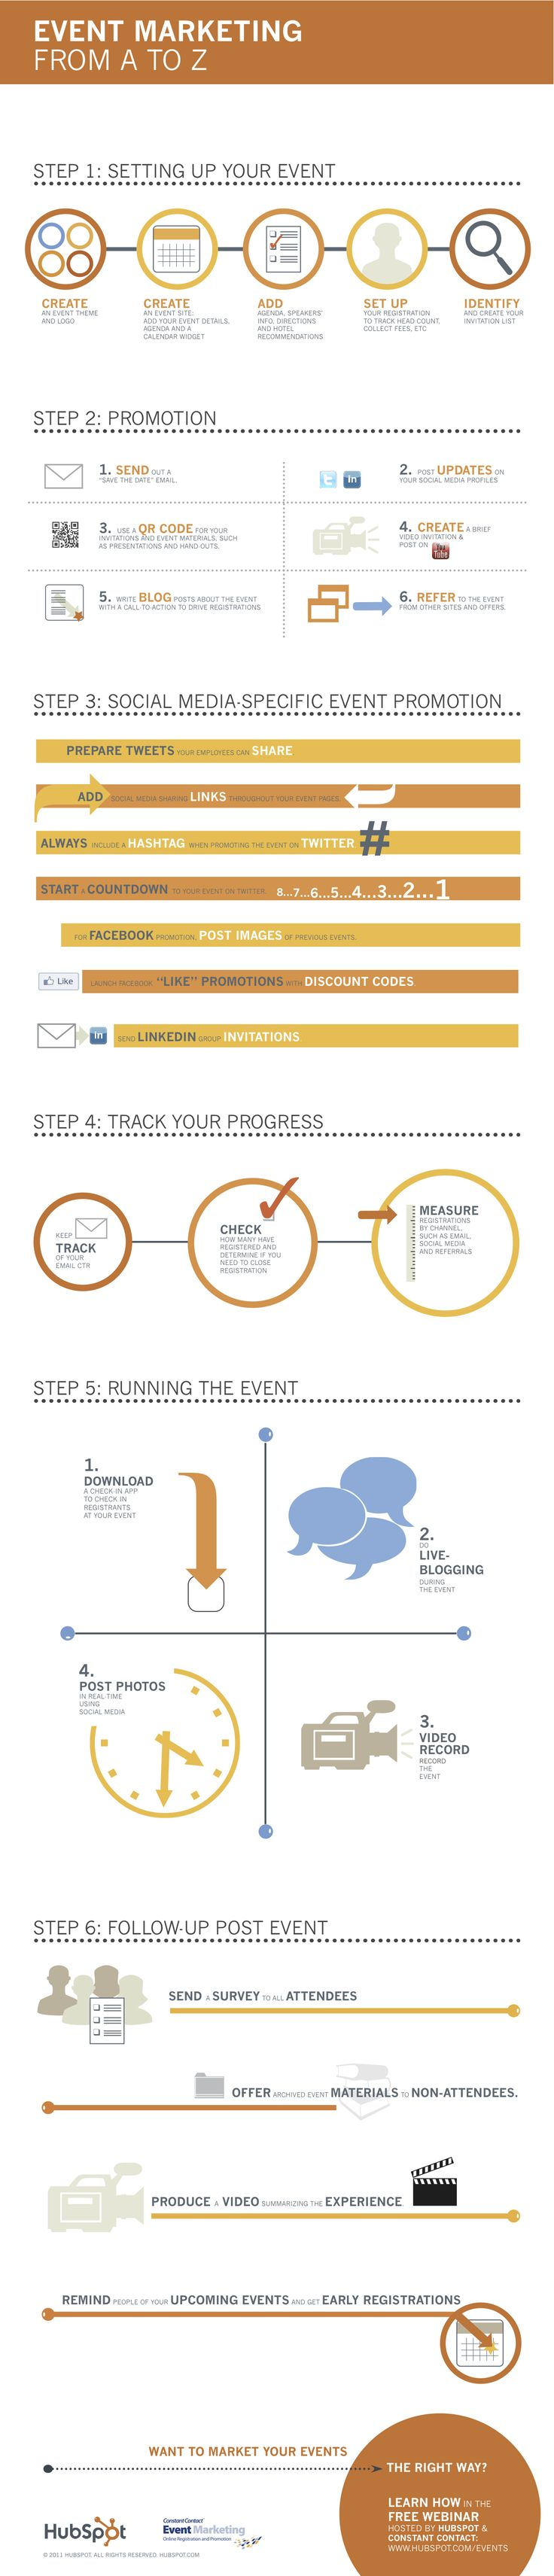 With computer and social media marketing it has never been easier to market an event. This infographic provides information for how to market an event